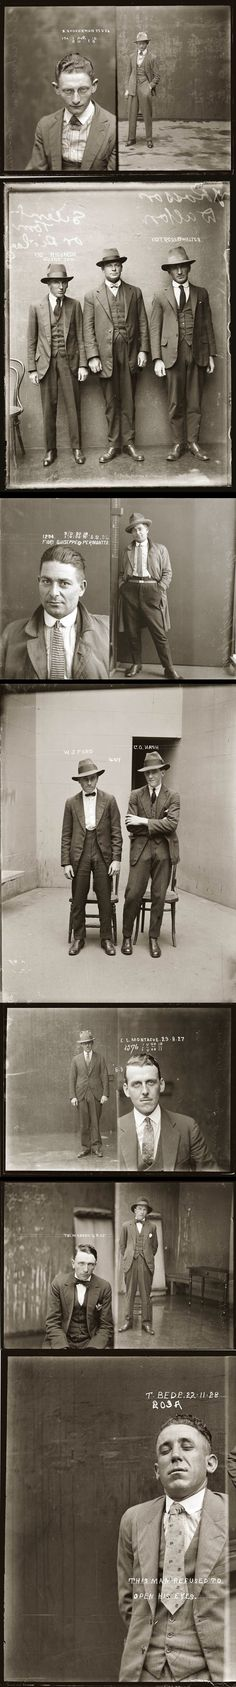 Vintage Mugshots from the 1920s. Australia.